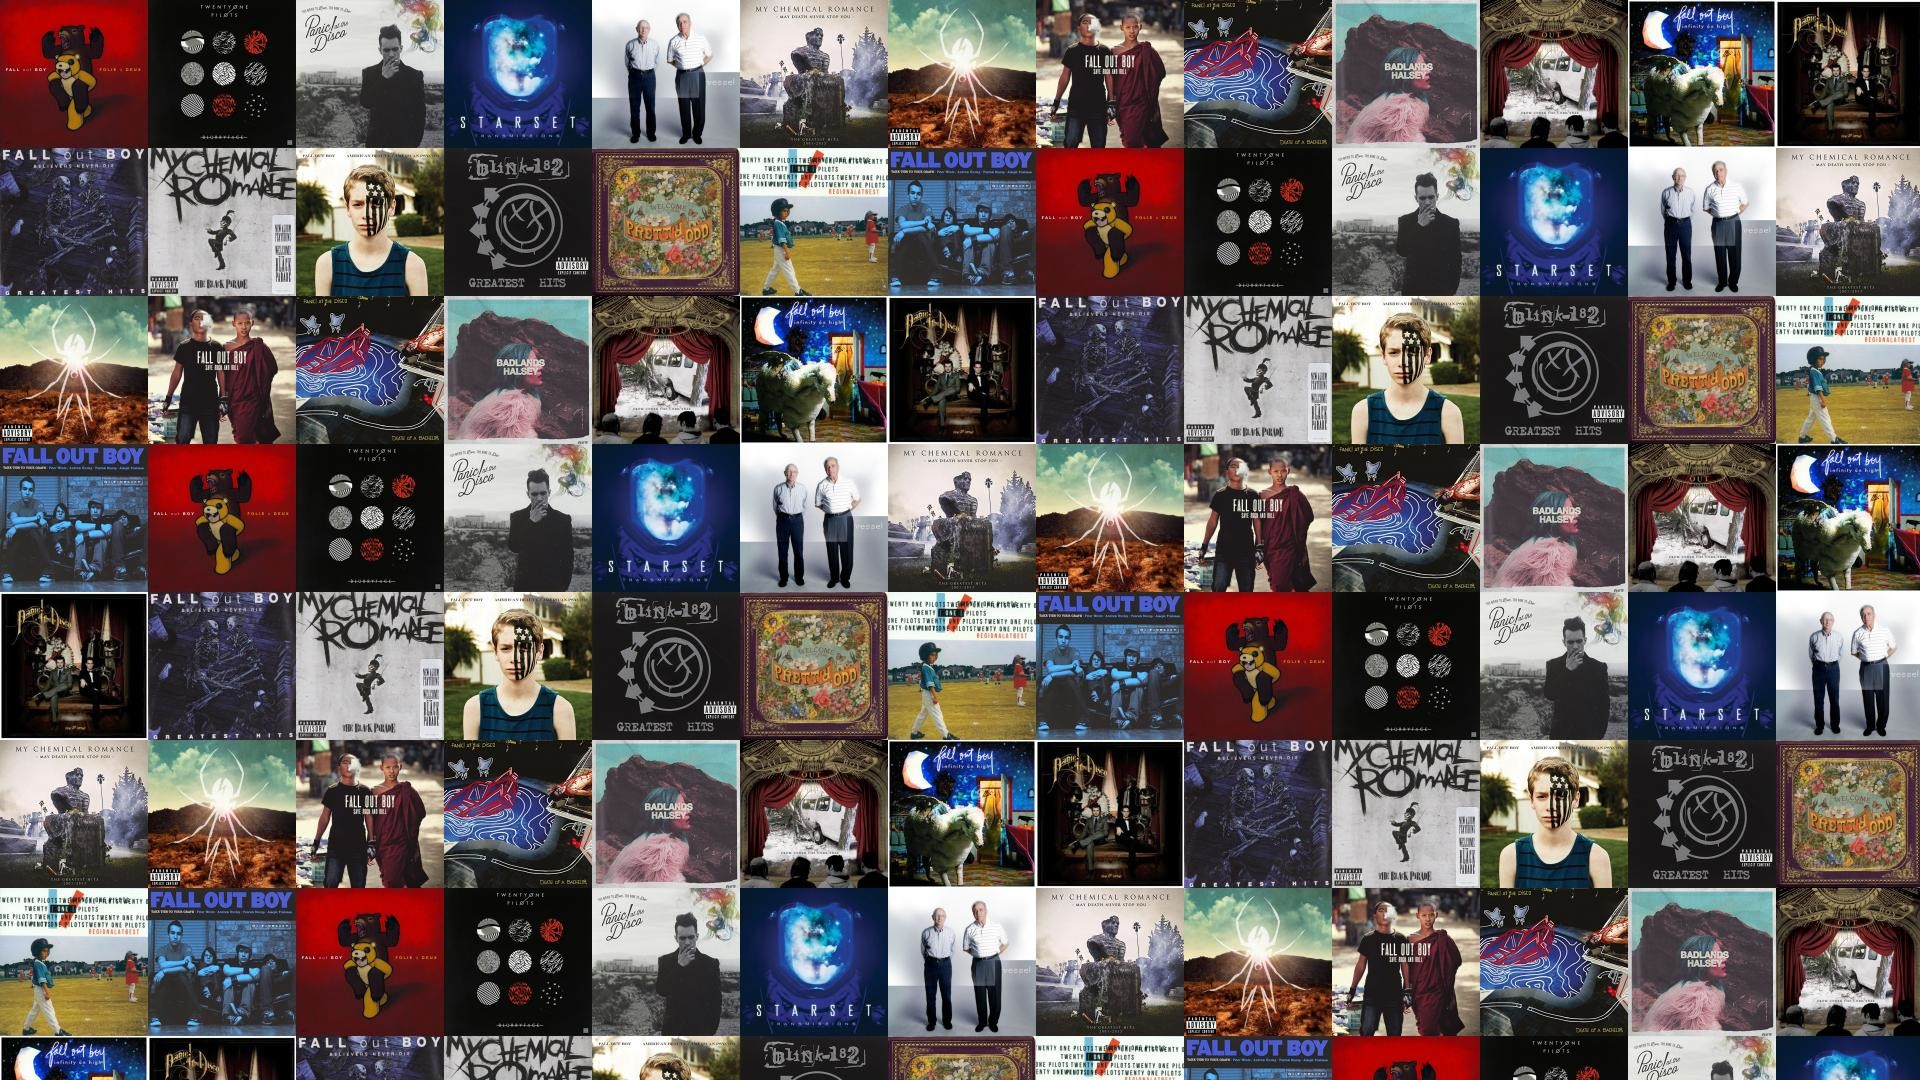 Fall Out Boy Song Lyrics Wallpaper Panic At The Disco Wallpapers 74 Images